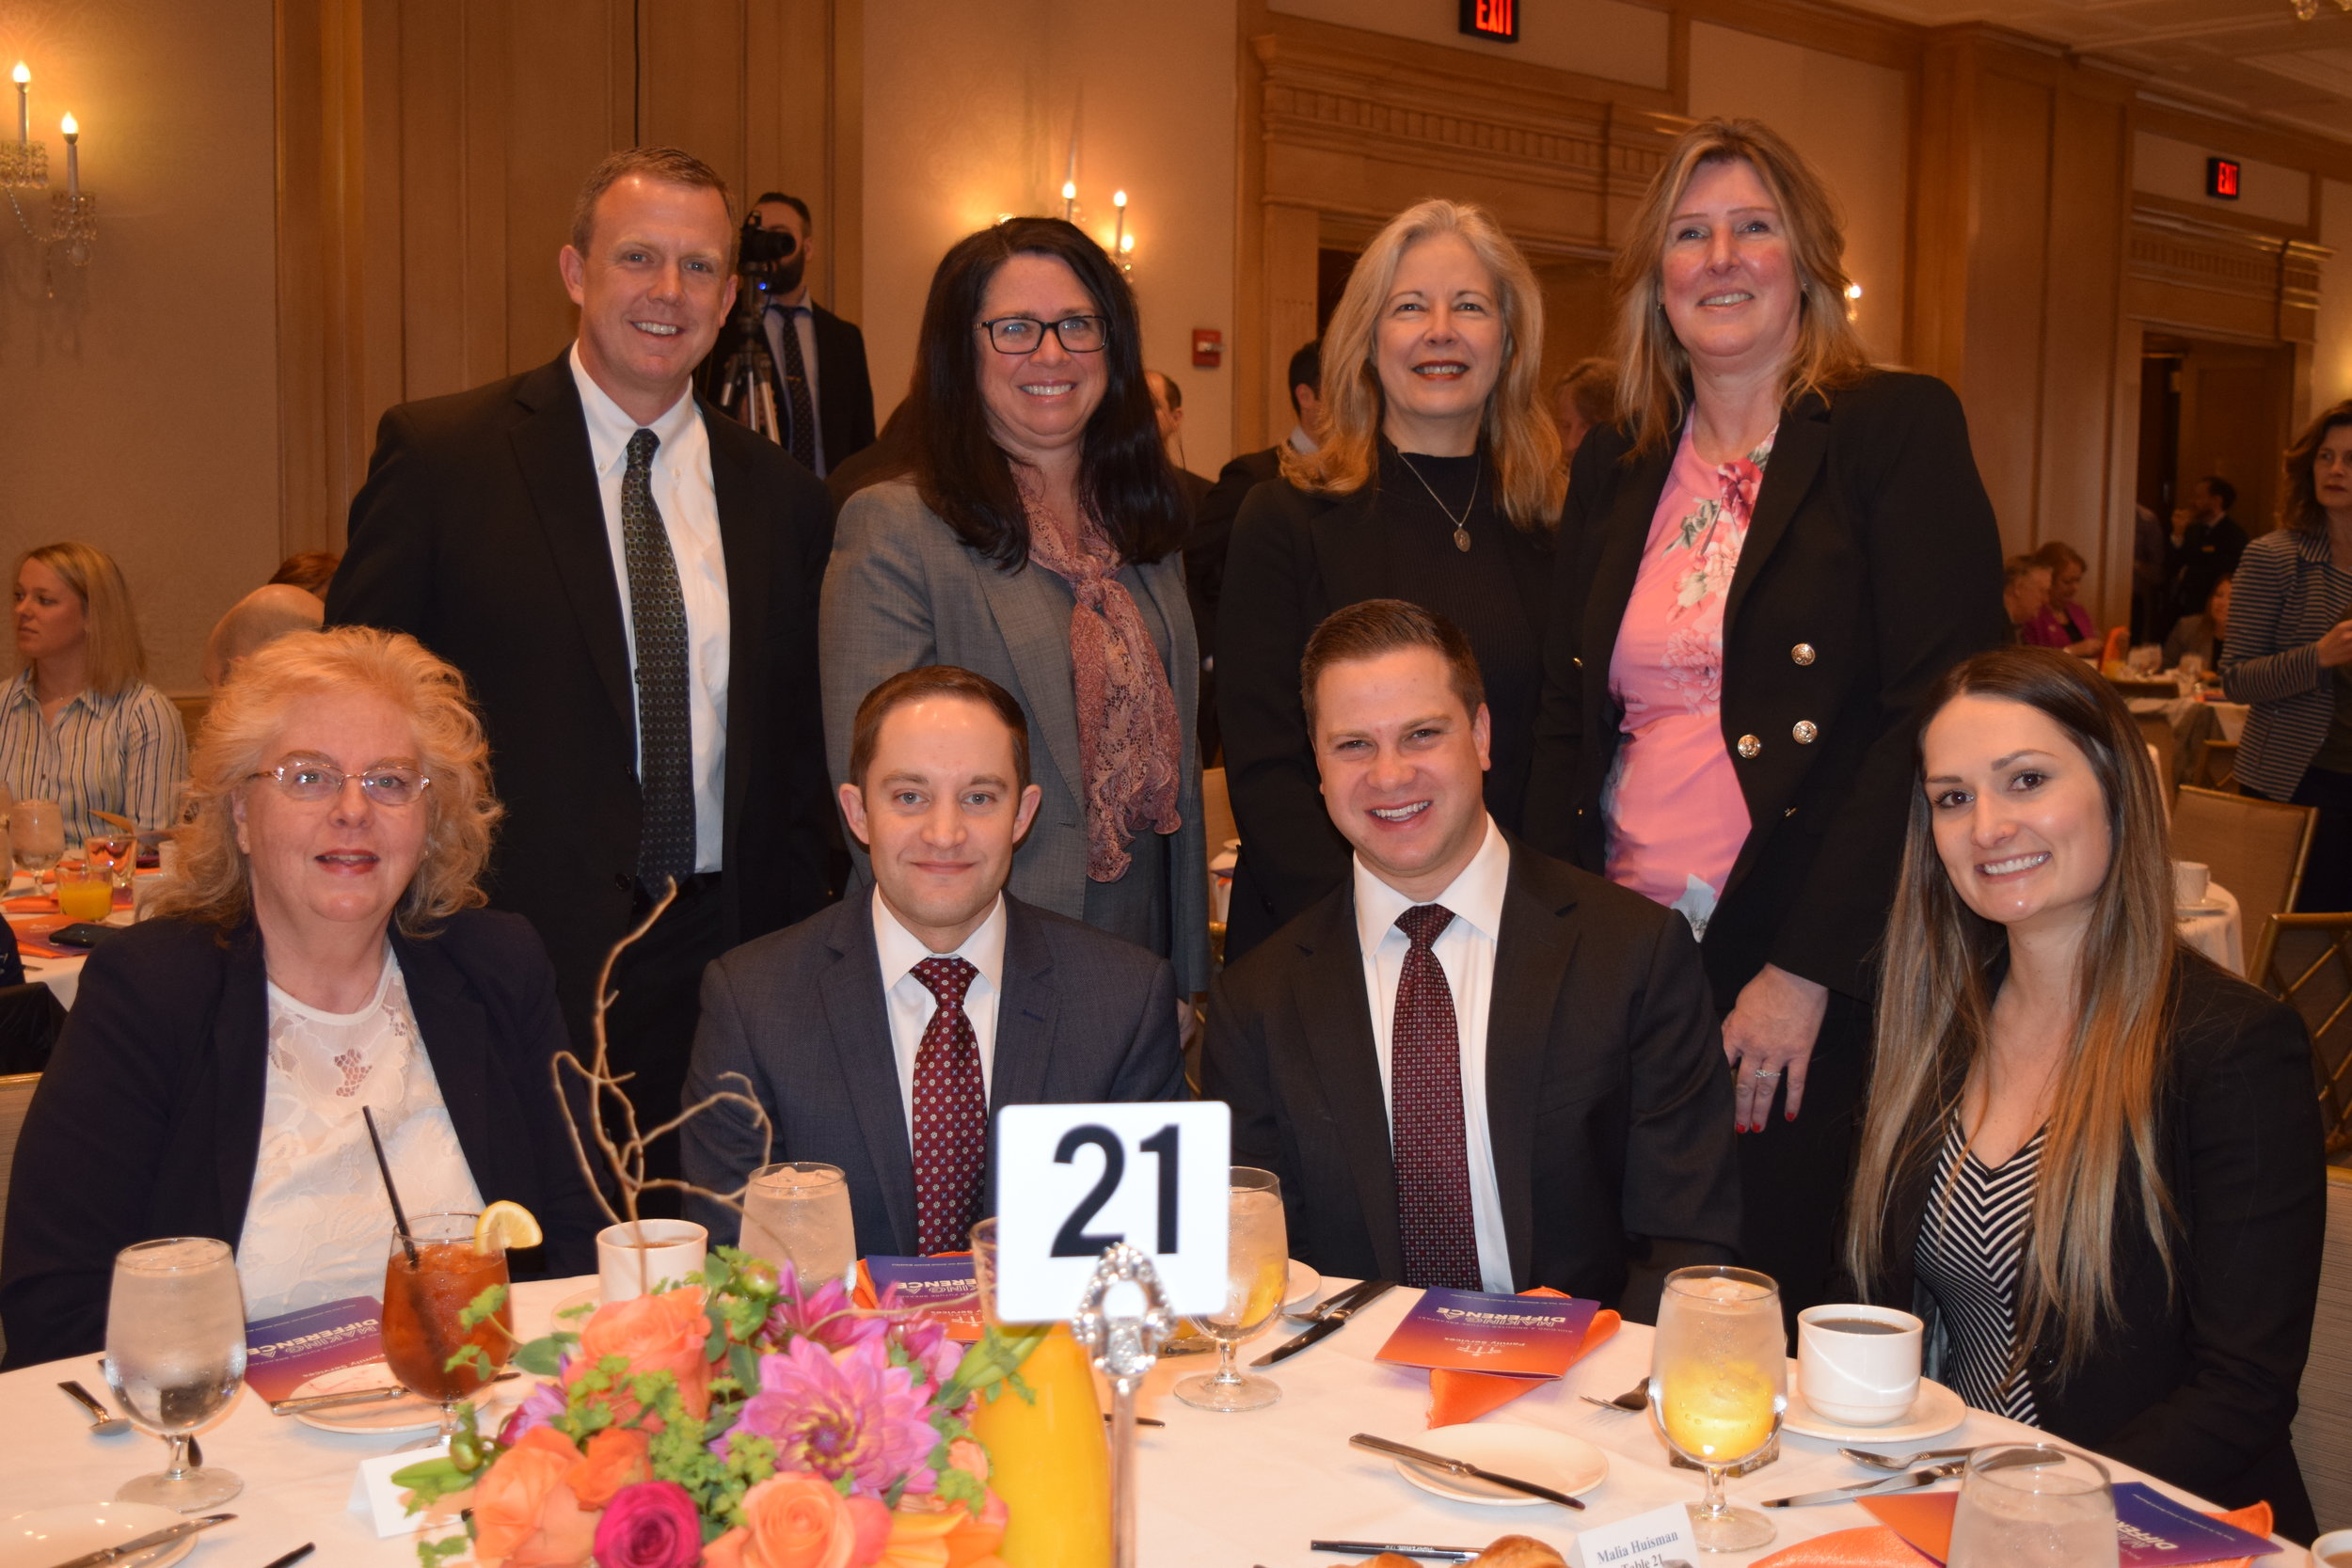 Representatives of breakfast sponsors Penske, including board member J.D. Carlson (top row, left), and Deloitte joined us at the event.